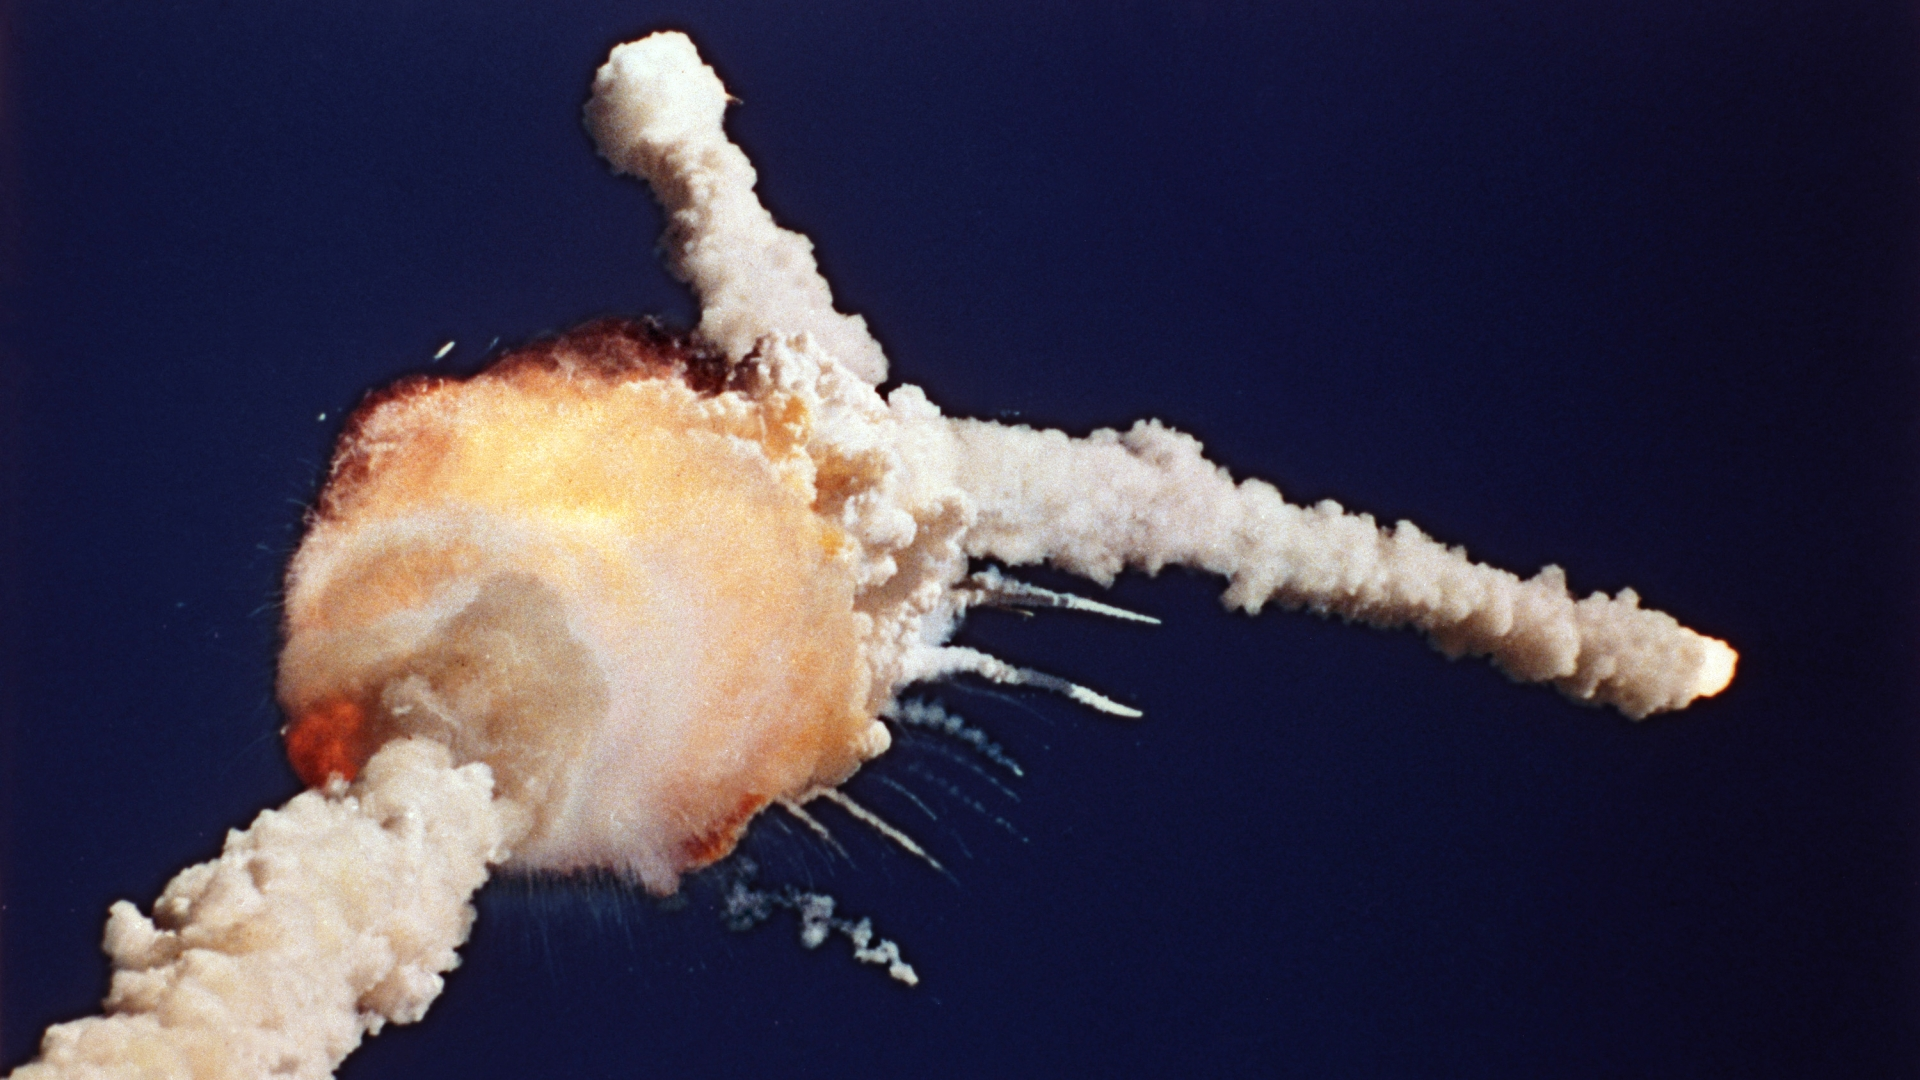 The space shuttle Challenger exploded 73 seconds after lift off. (Credit: Bruce Weaver/AP Photo)